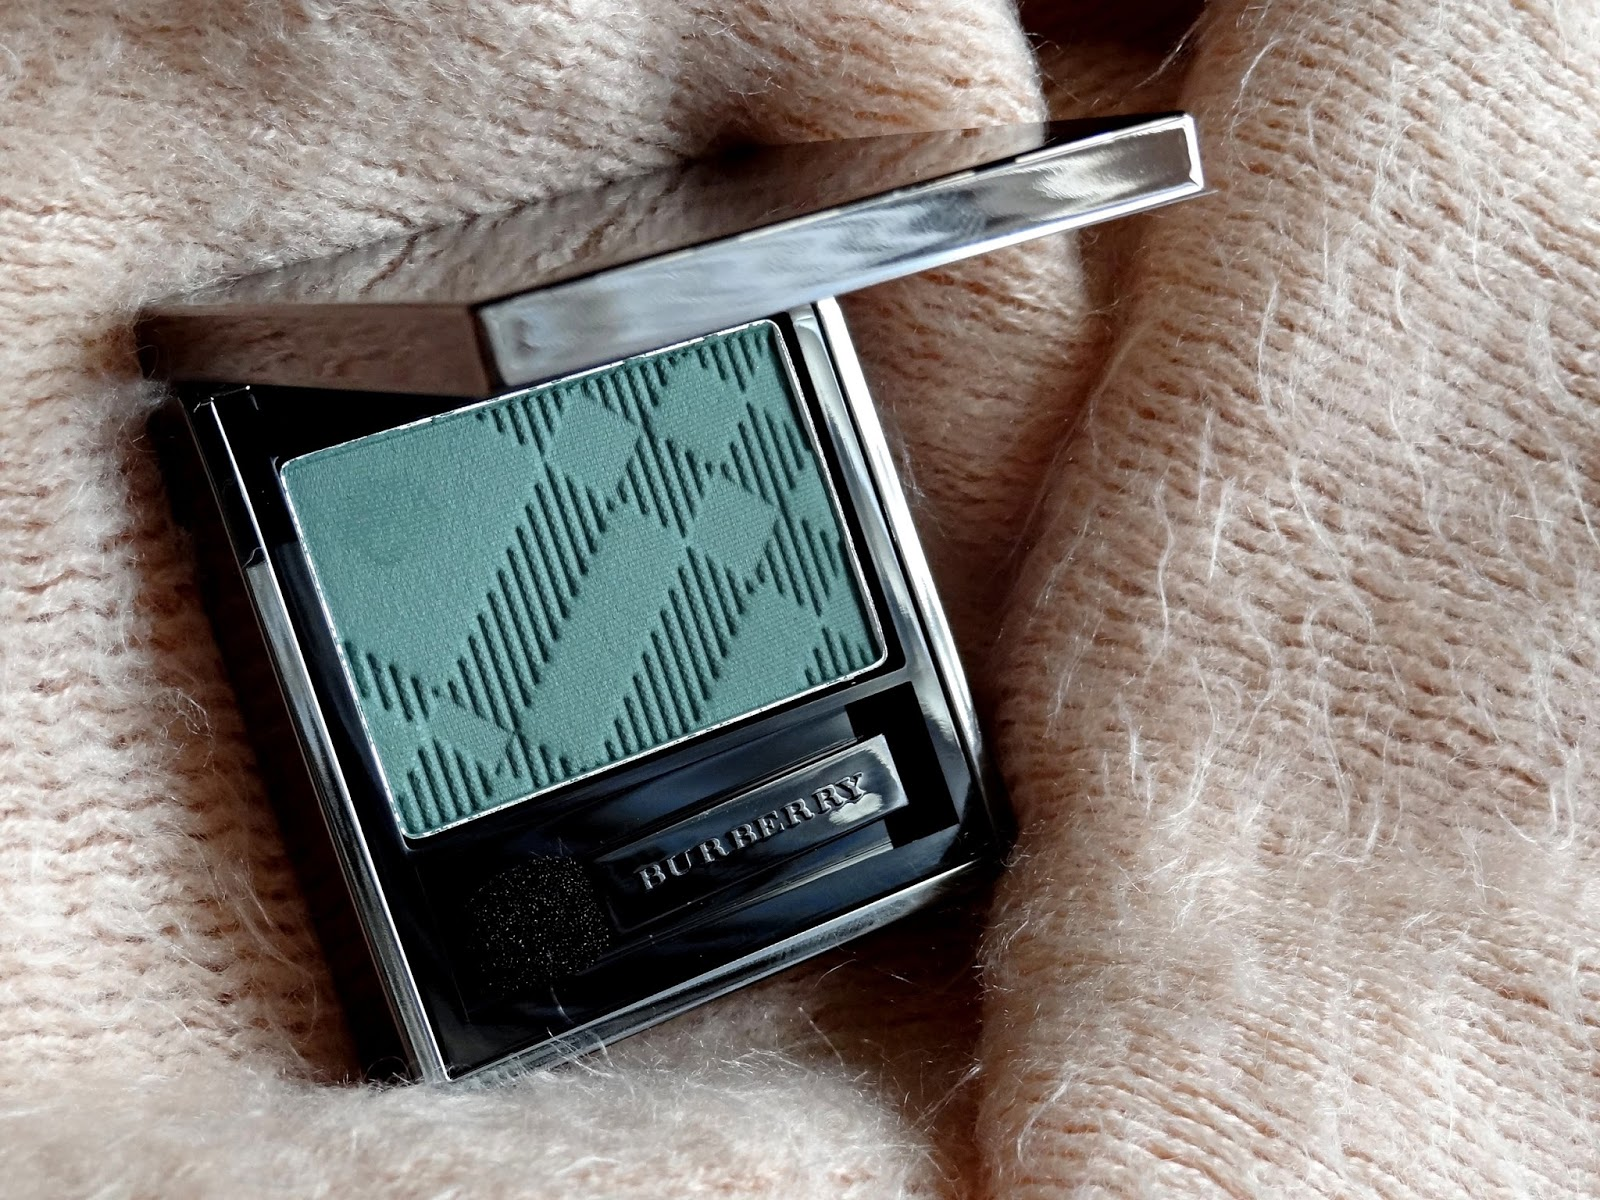 Burberry Beauty Wet Dry Silk Eyeshadow in Aqua Green No.309